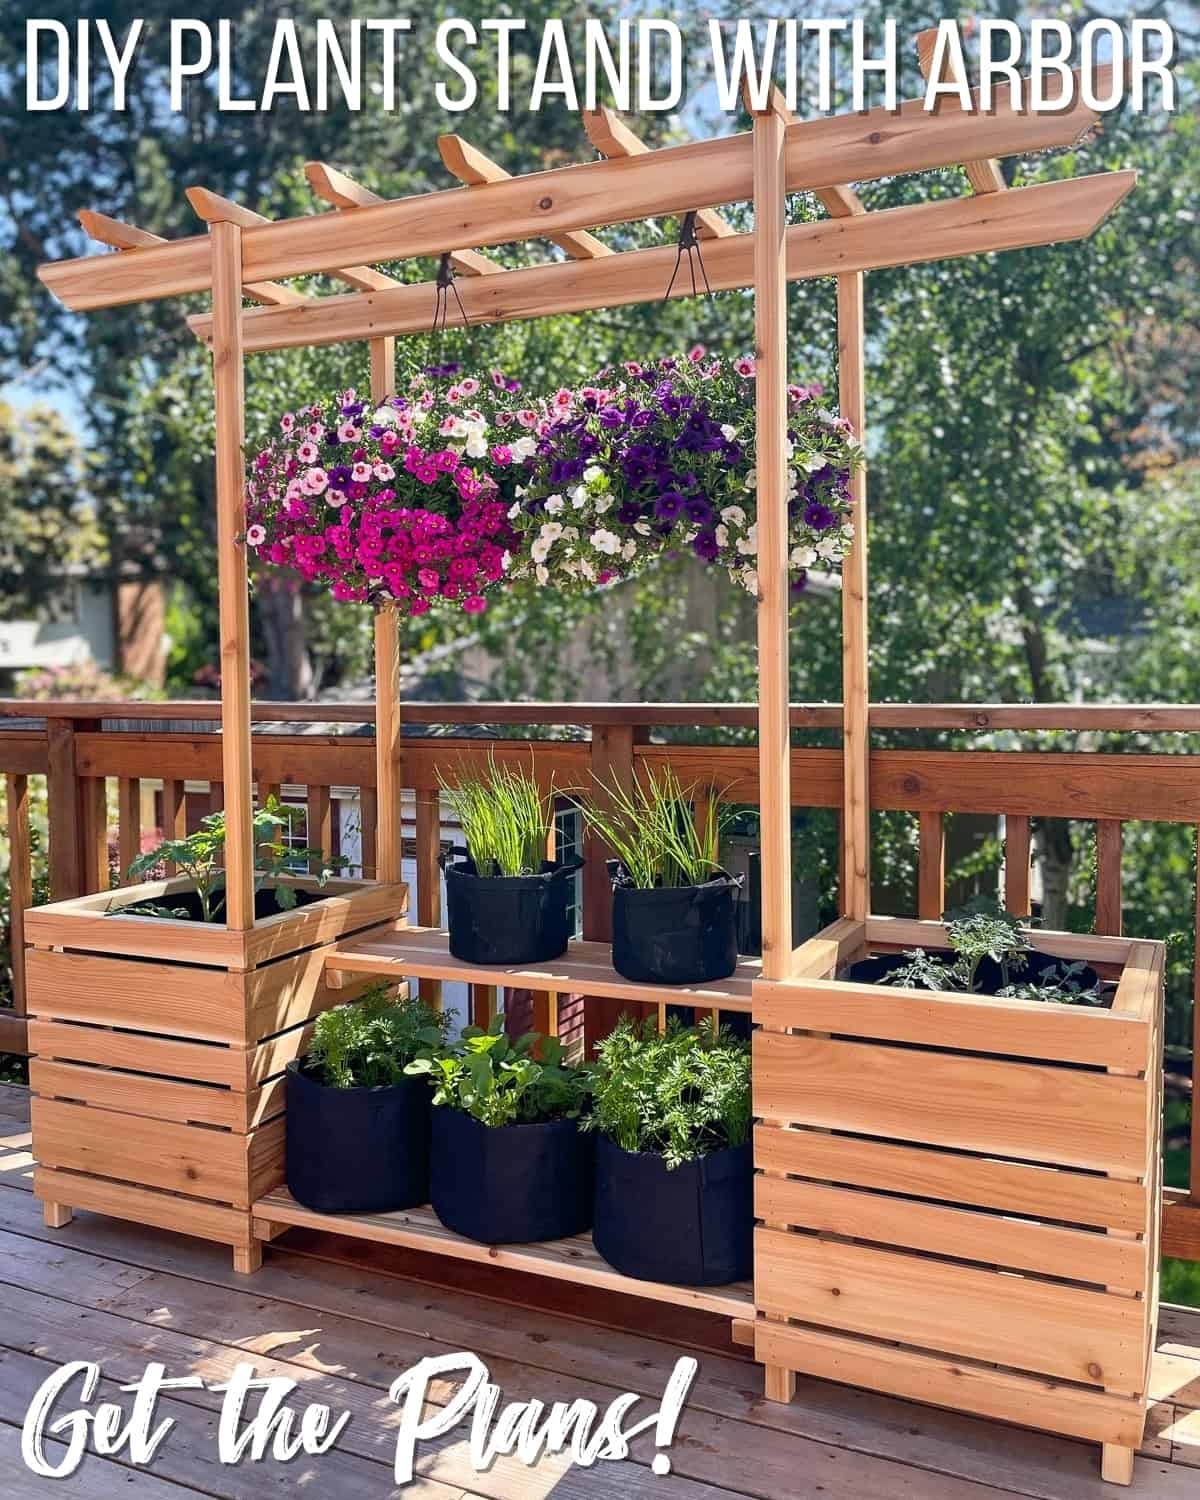 DIY outdoor plant stand with arbor